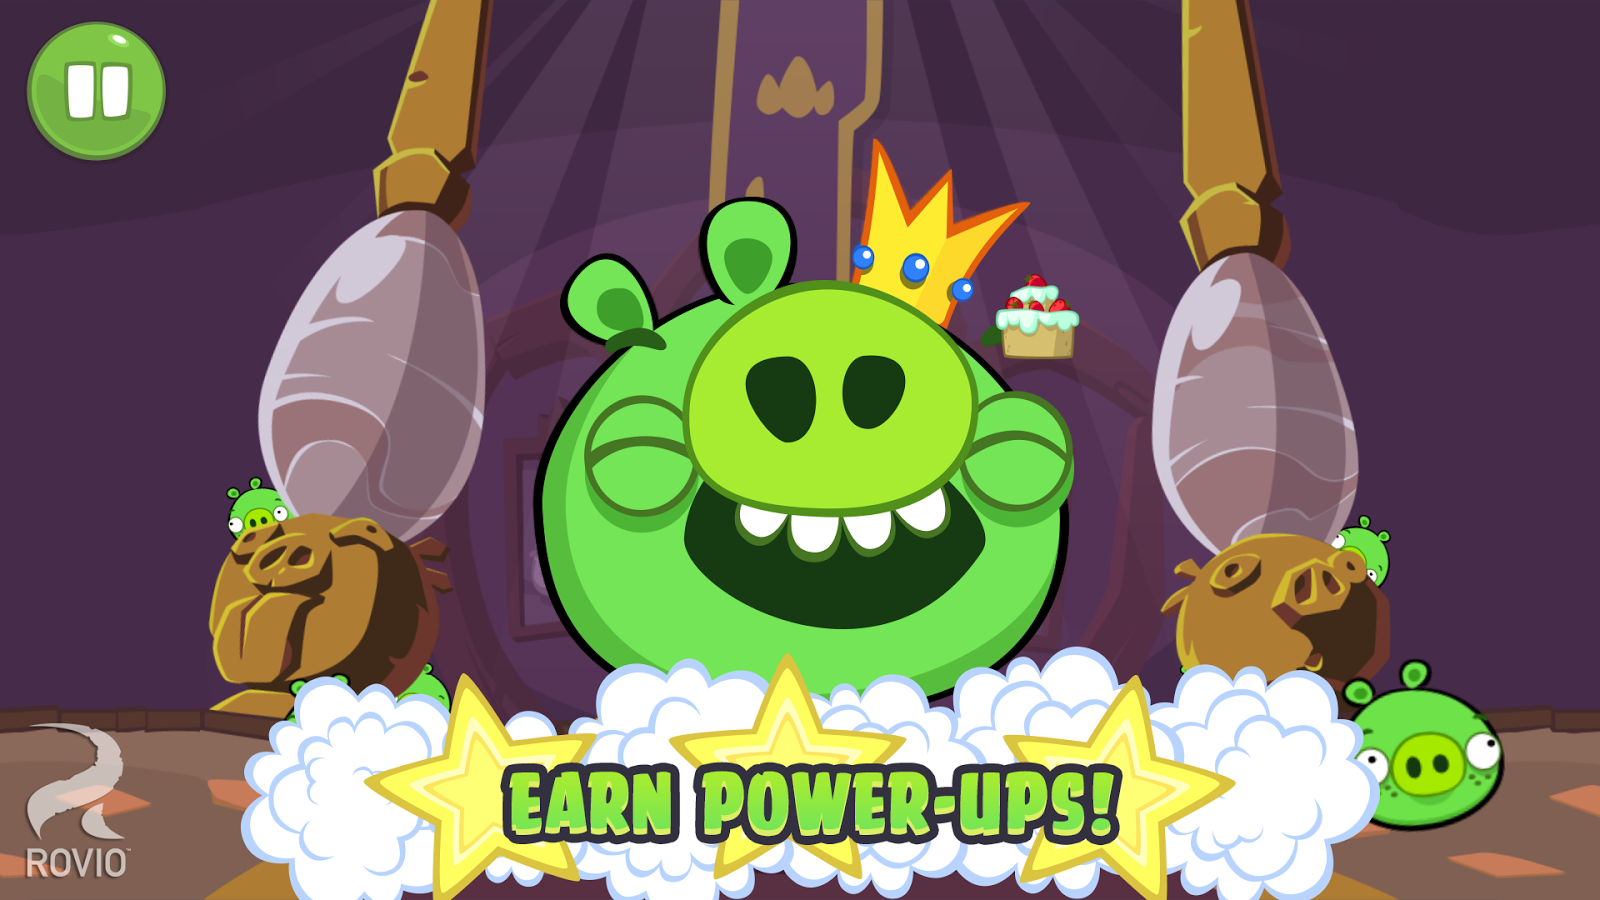 Rovio Bad Piggies game